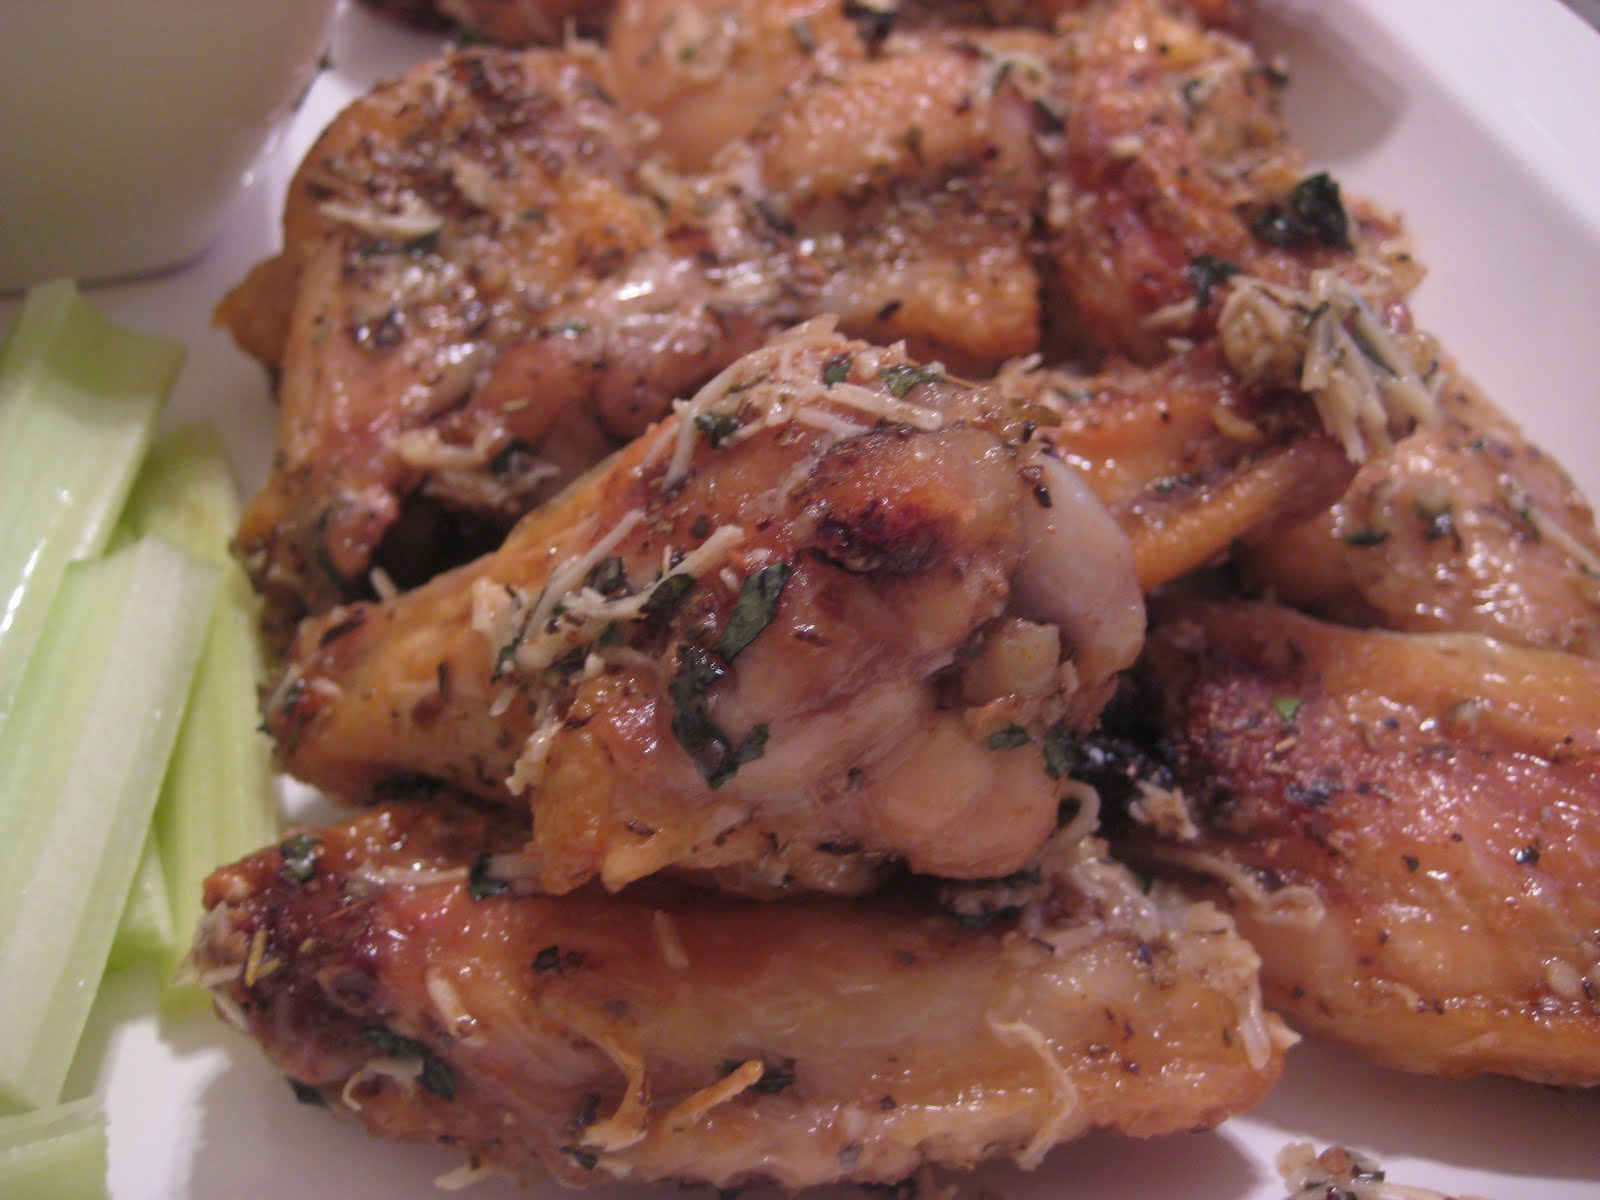 One Couple's Kitchen: Baked Parmesan Garlic Chicken Wings